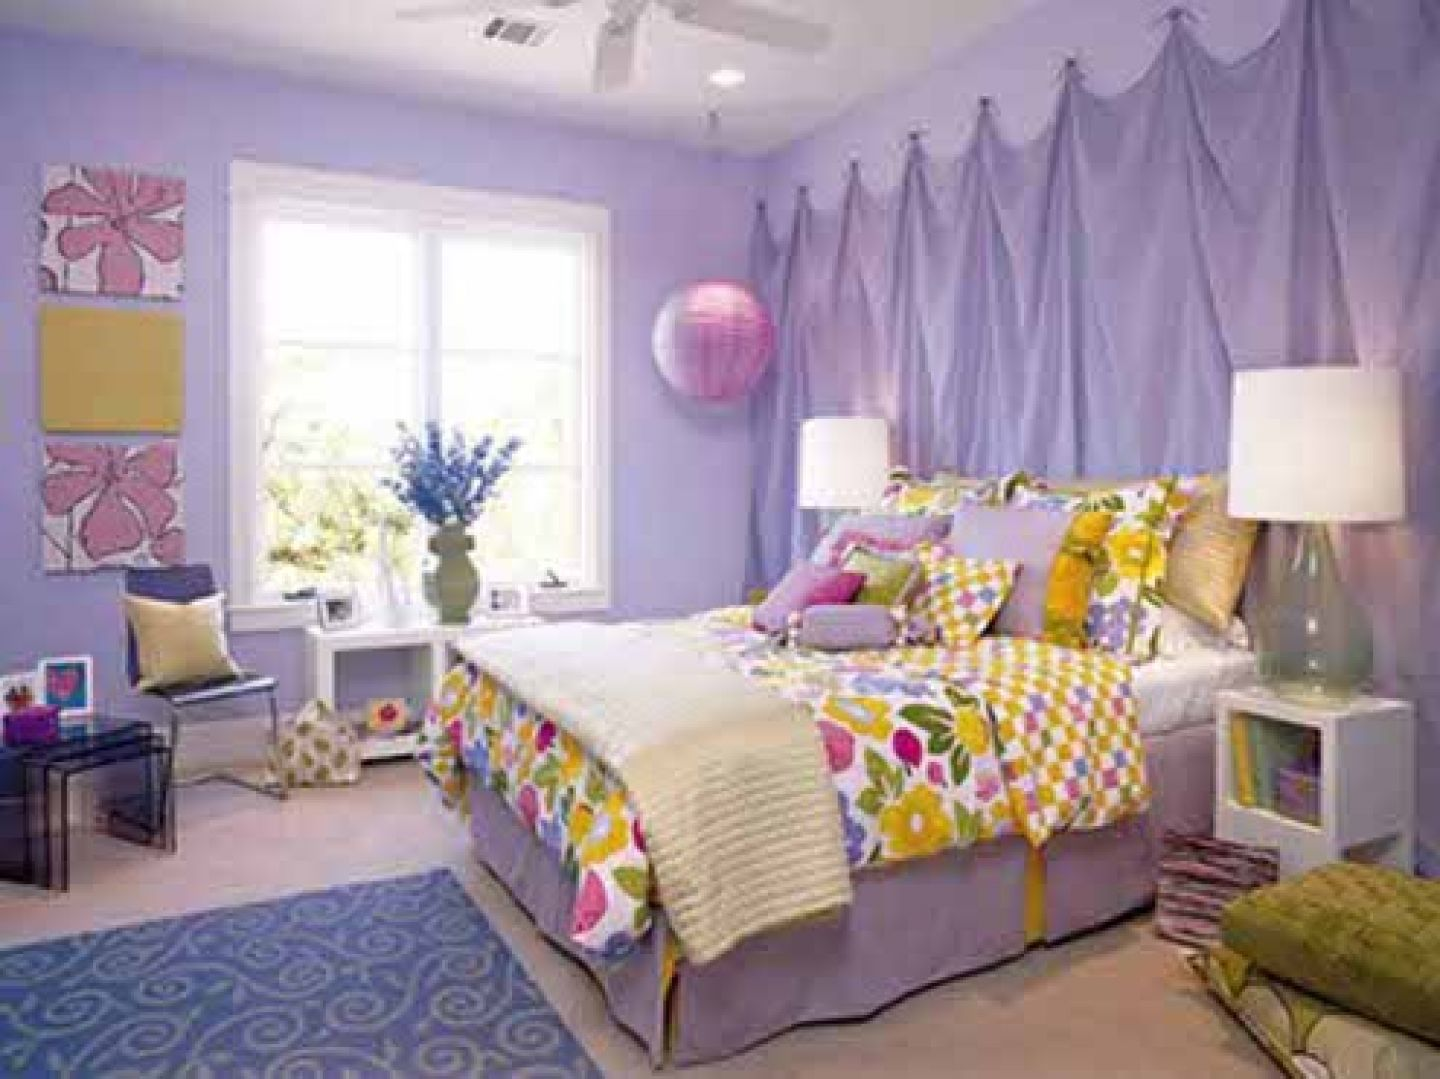 Simple bedroom design for teenage girls - 30 Beautiful Bedroom Designs For Teenage Girls Vintage Cheap Bedroom Set Ideas For Teenage